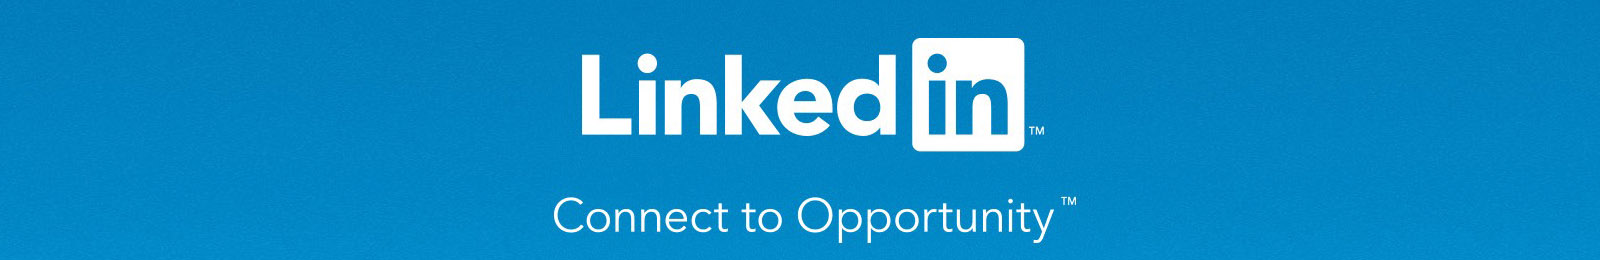 Linkedin marketing course training institute proideators